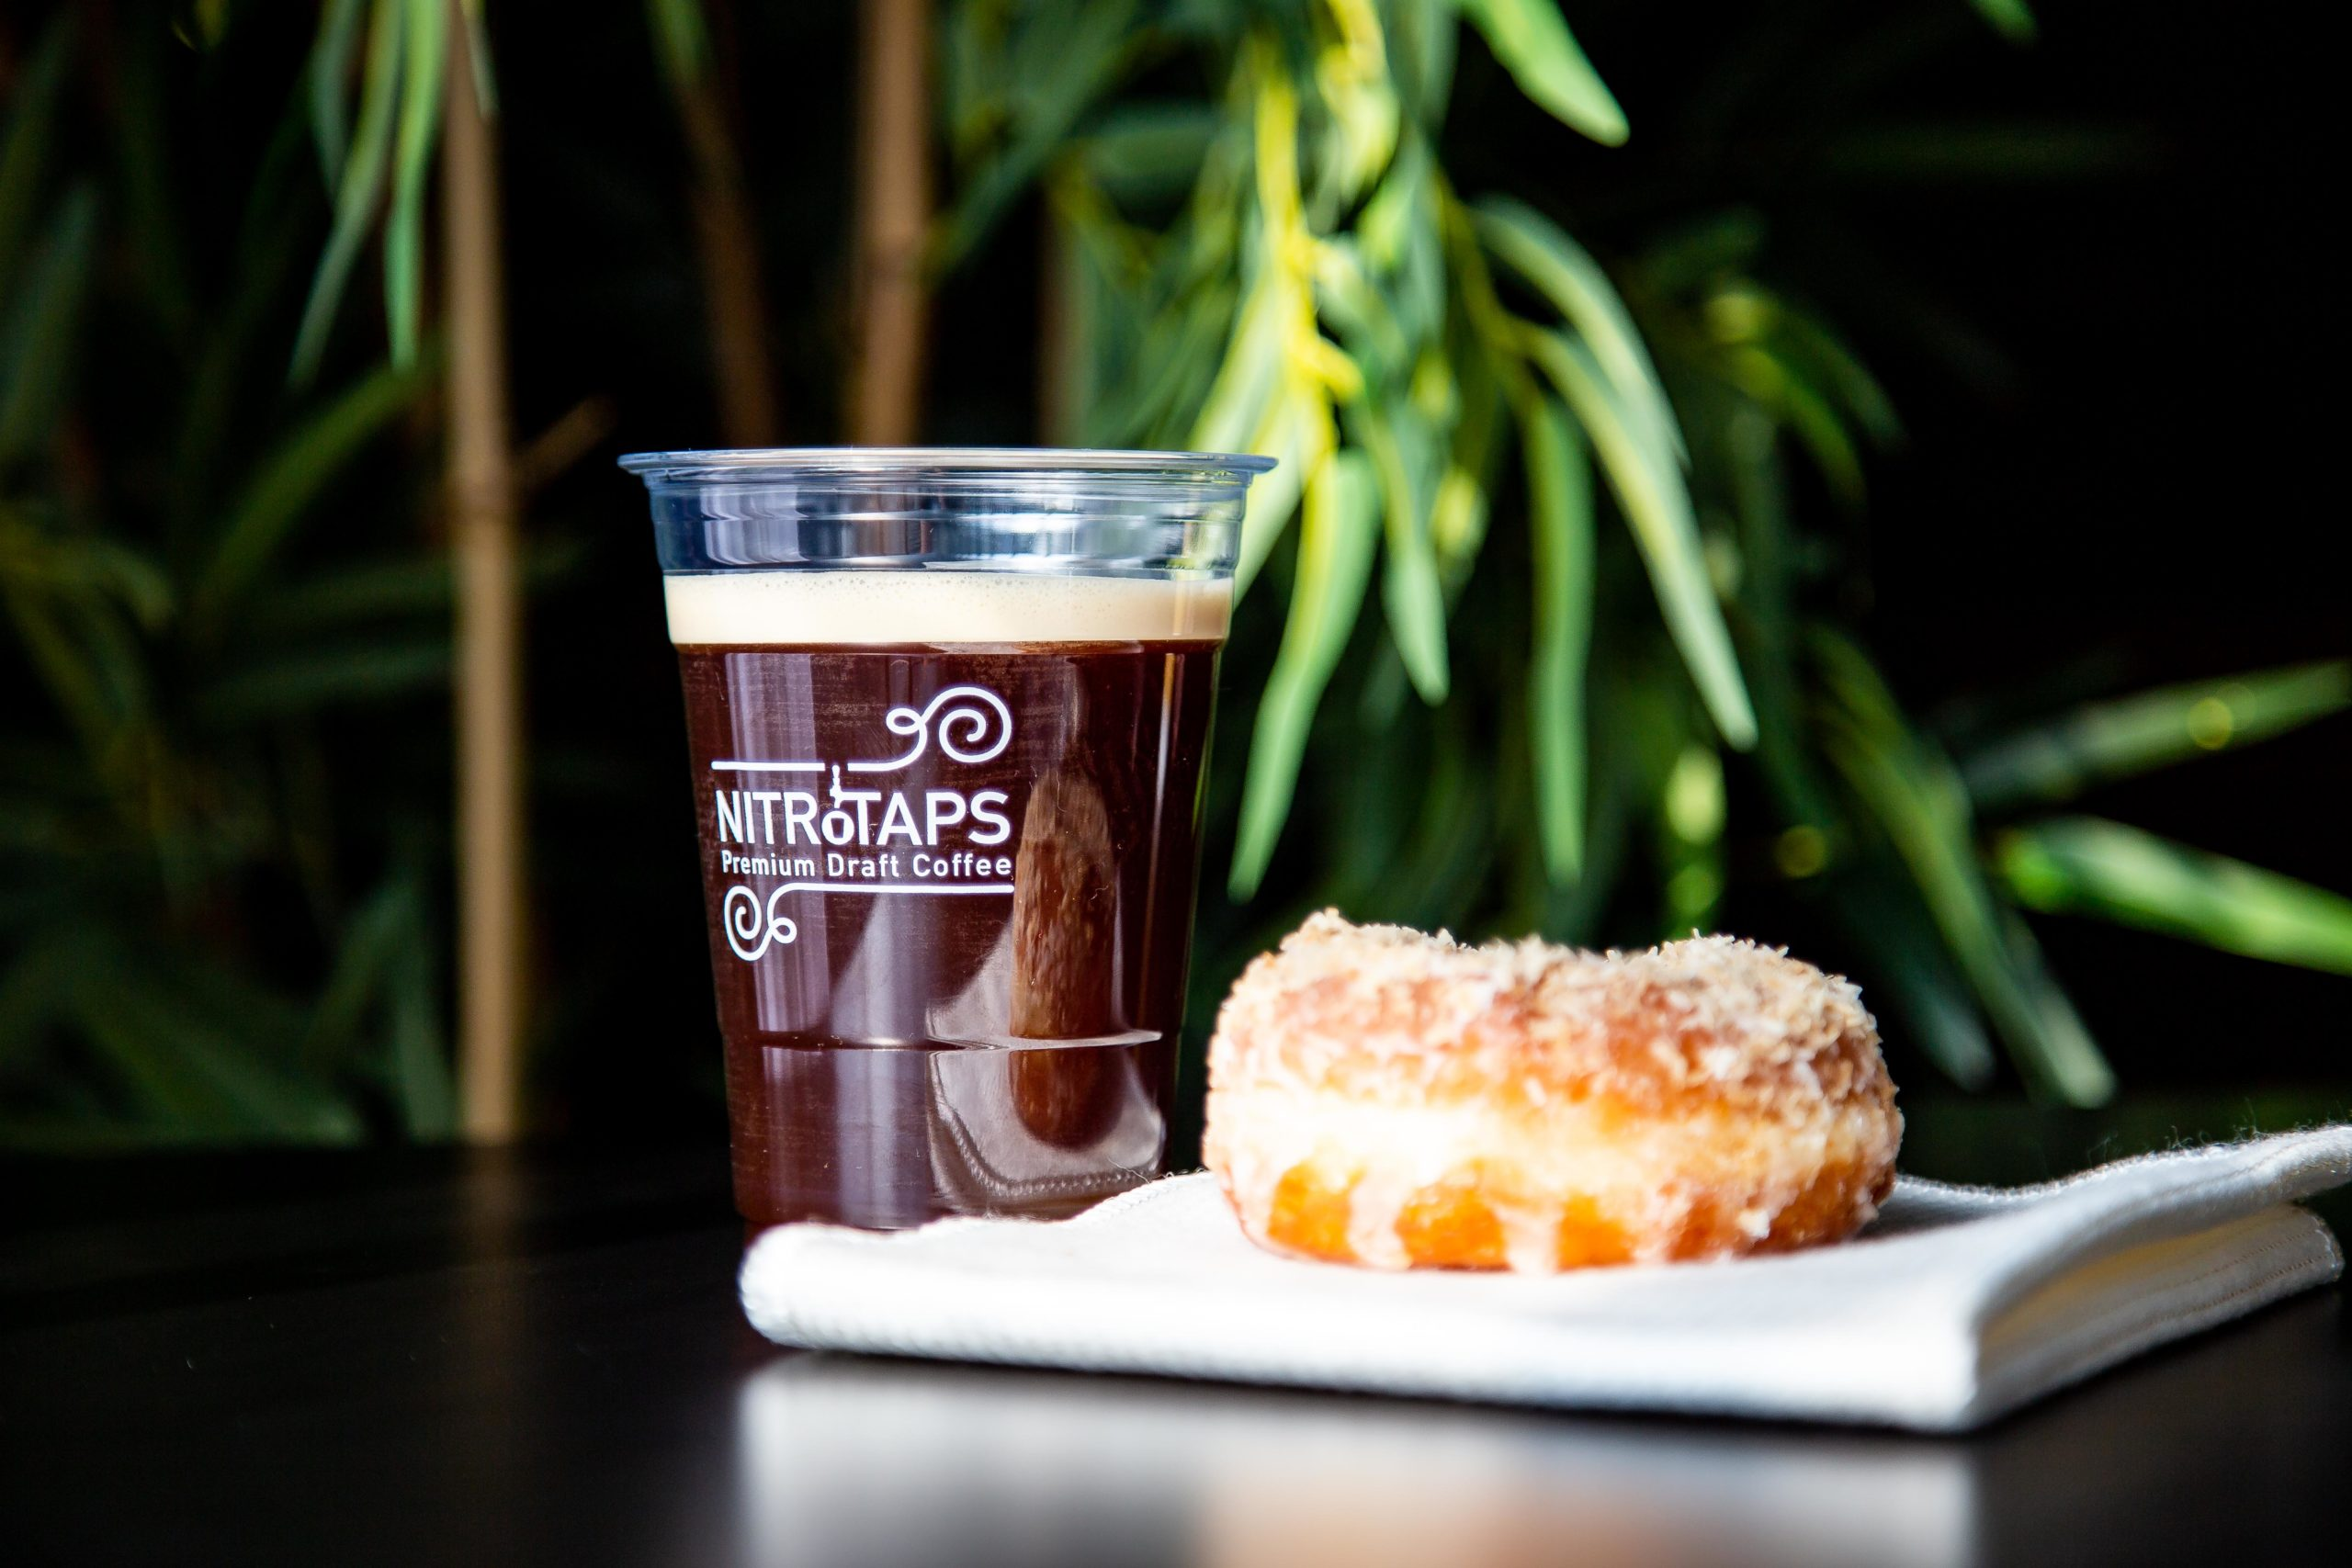 NitroTaps Coffee and Donut Catering